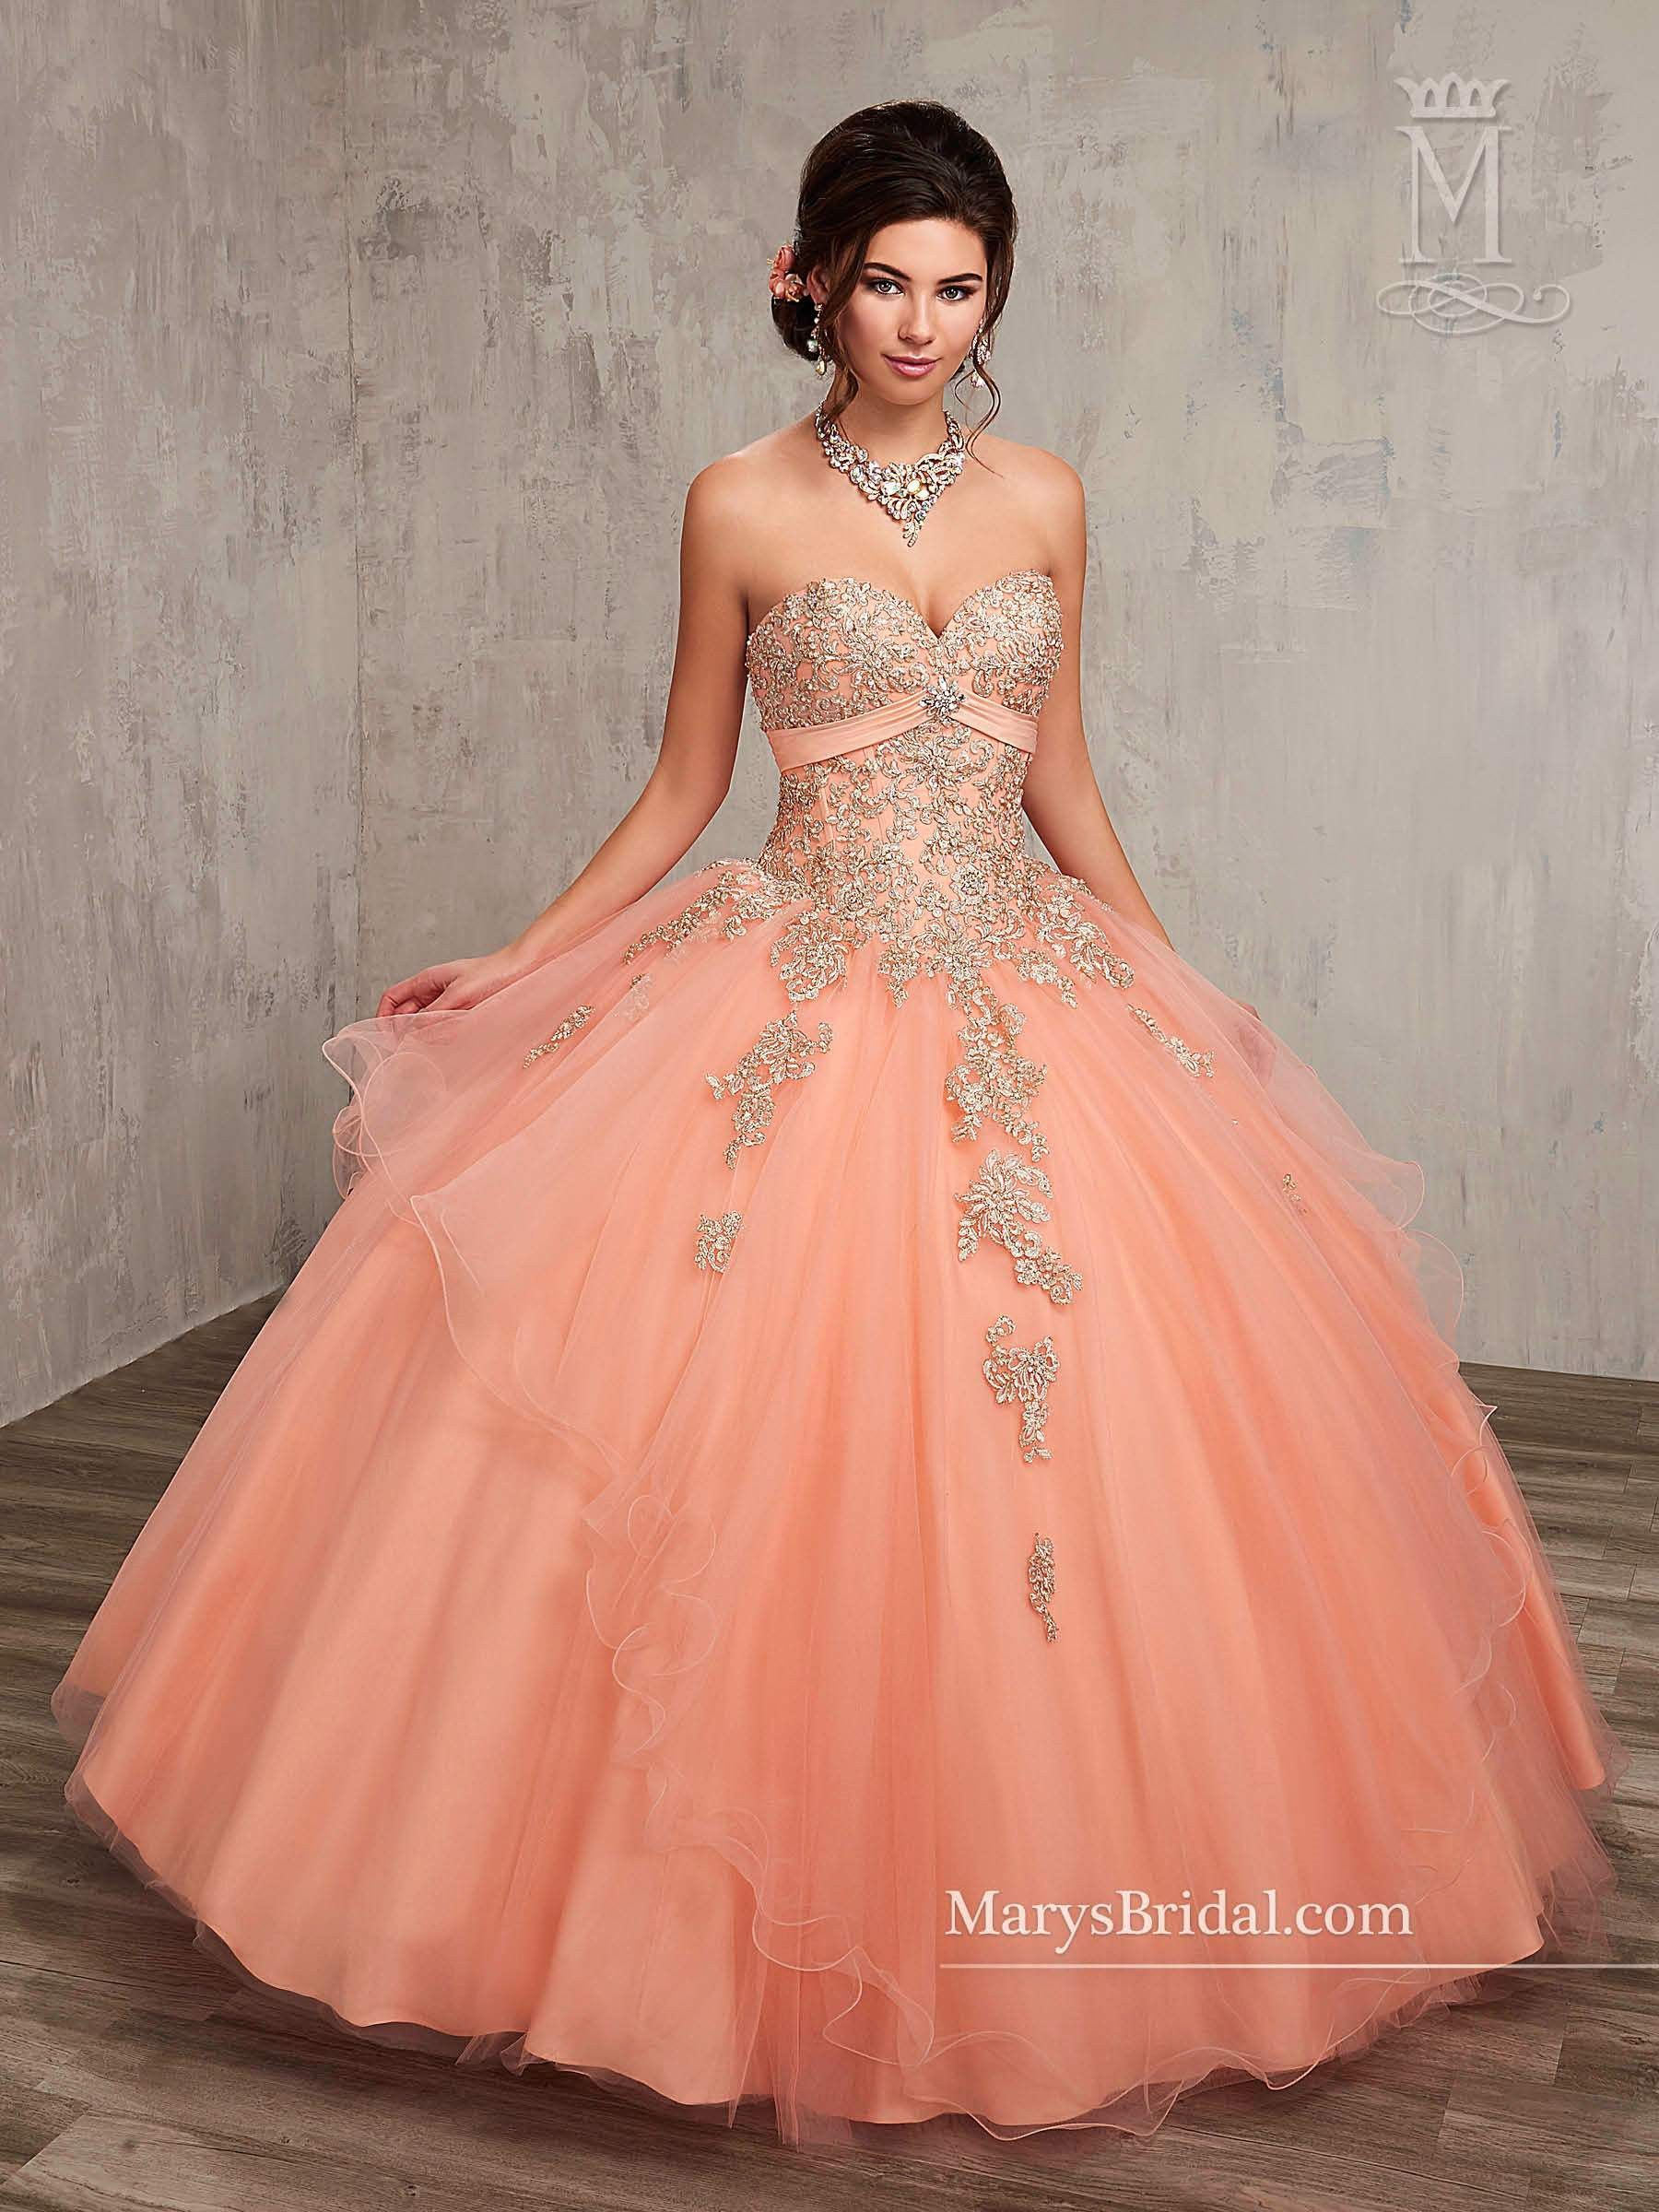 04a9f84337b Beaded Strapless Quinceanera Dress by Mary s Bridal Princess 4Q500 ...